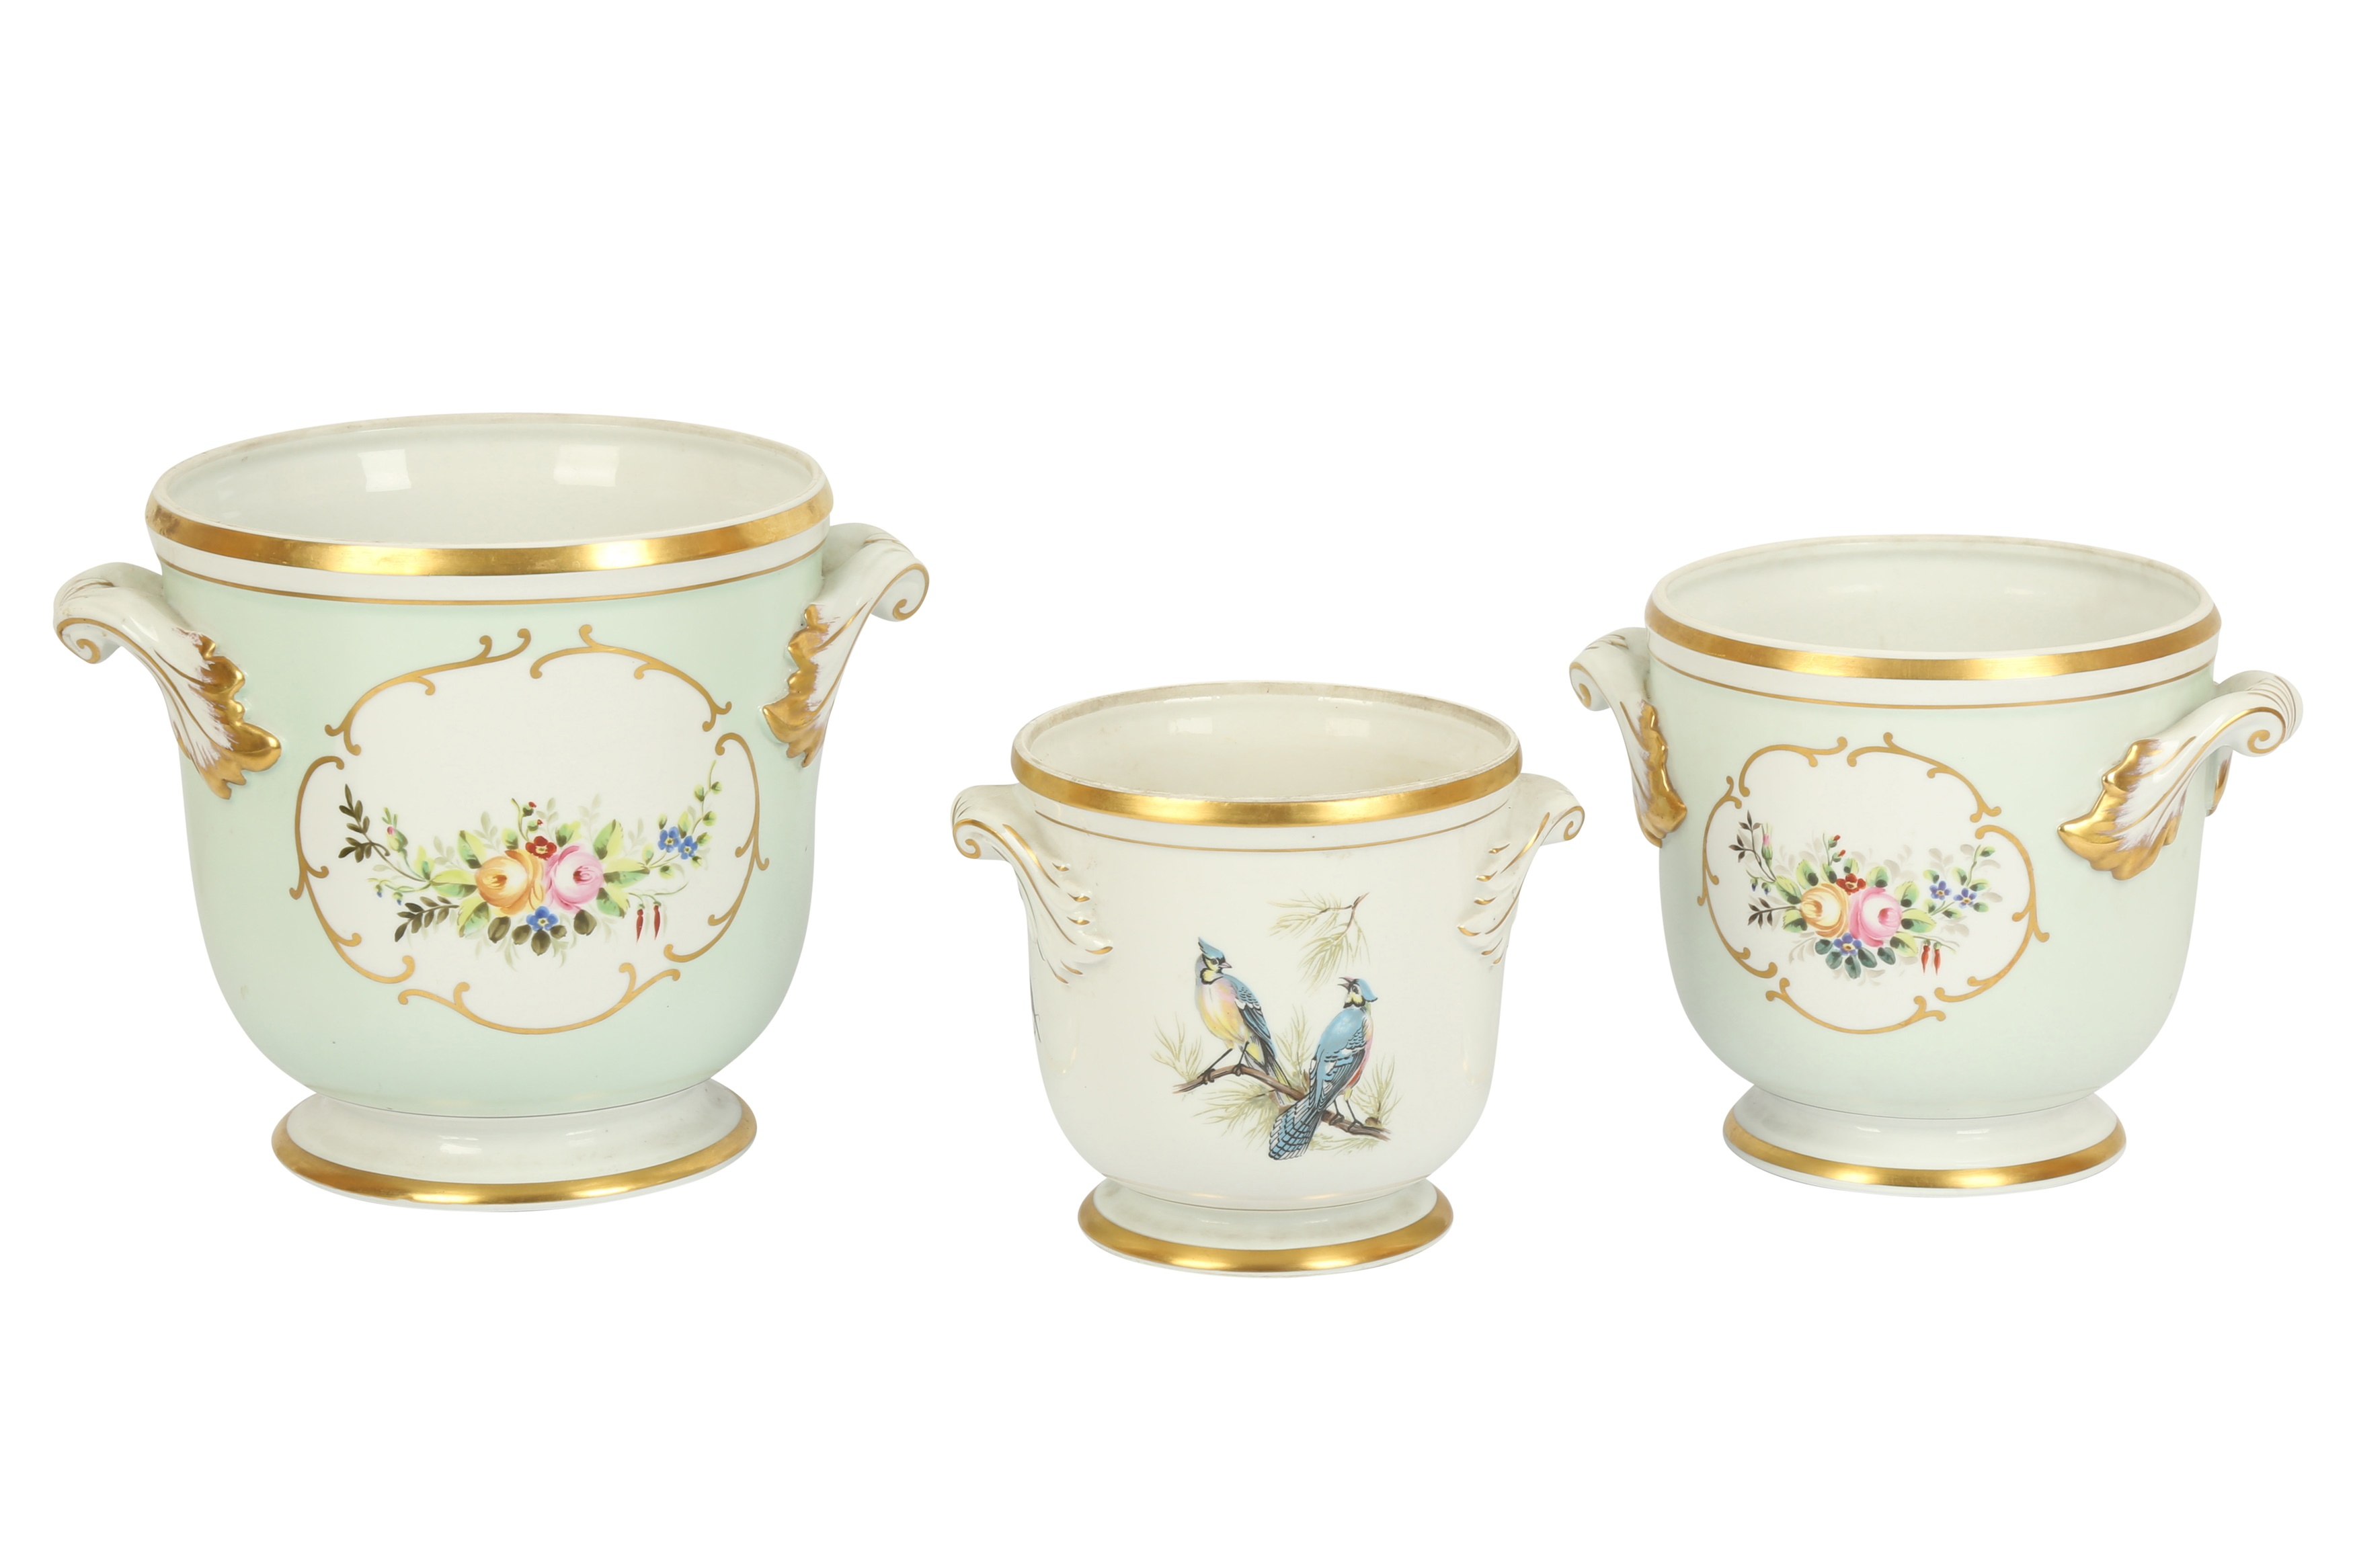 Two porcelain ice buckets by Vista Alegre, retailed by Thomas Goode and Co., in the Sevres style,